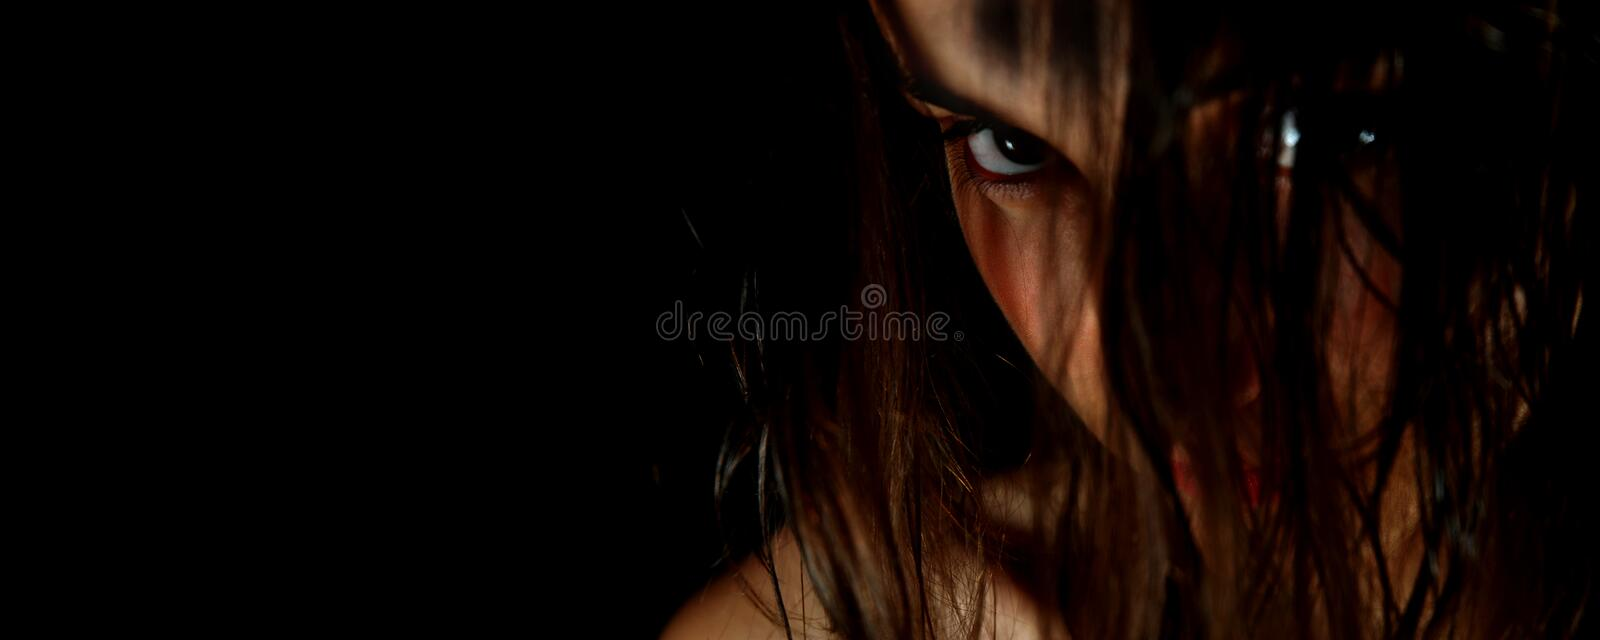 Dark face #4 stock photos